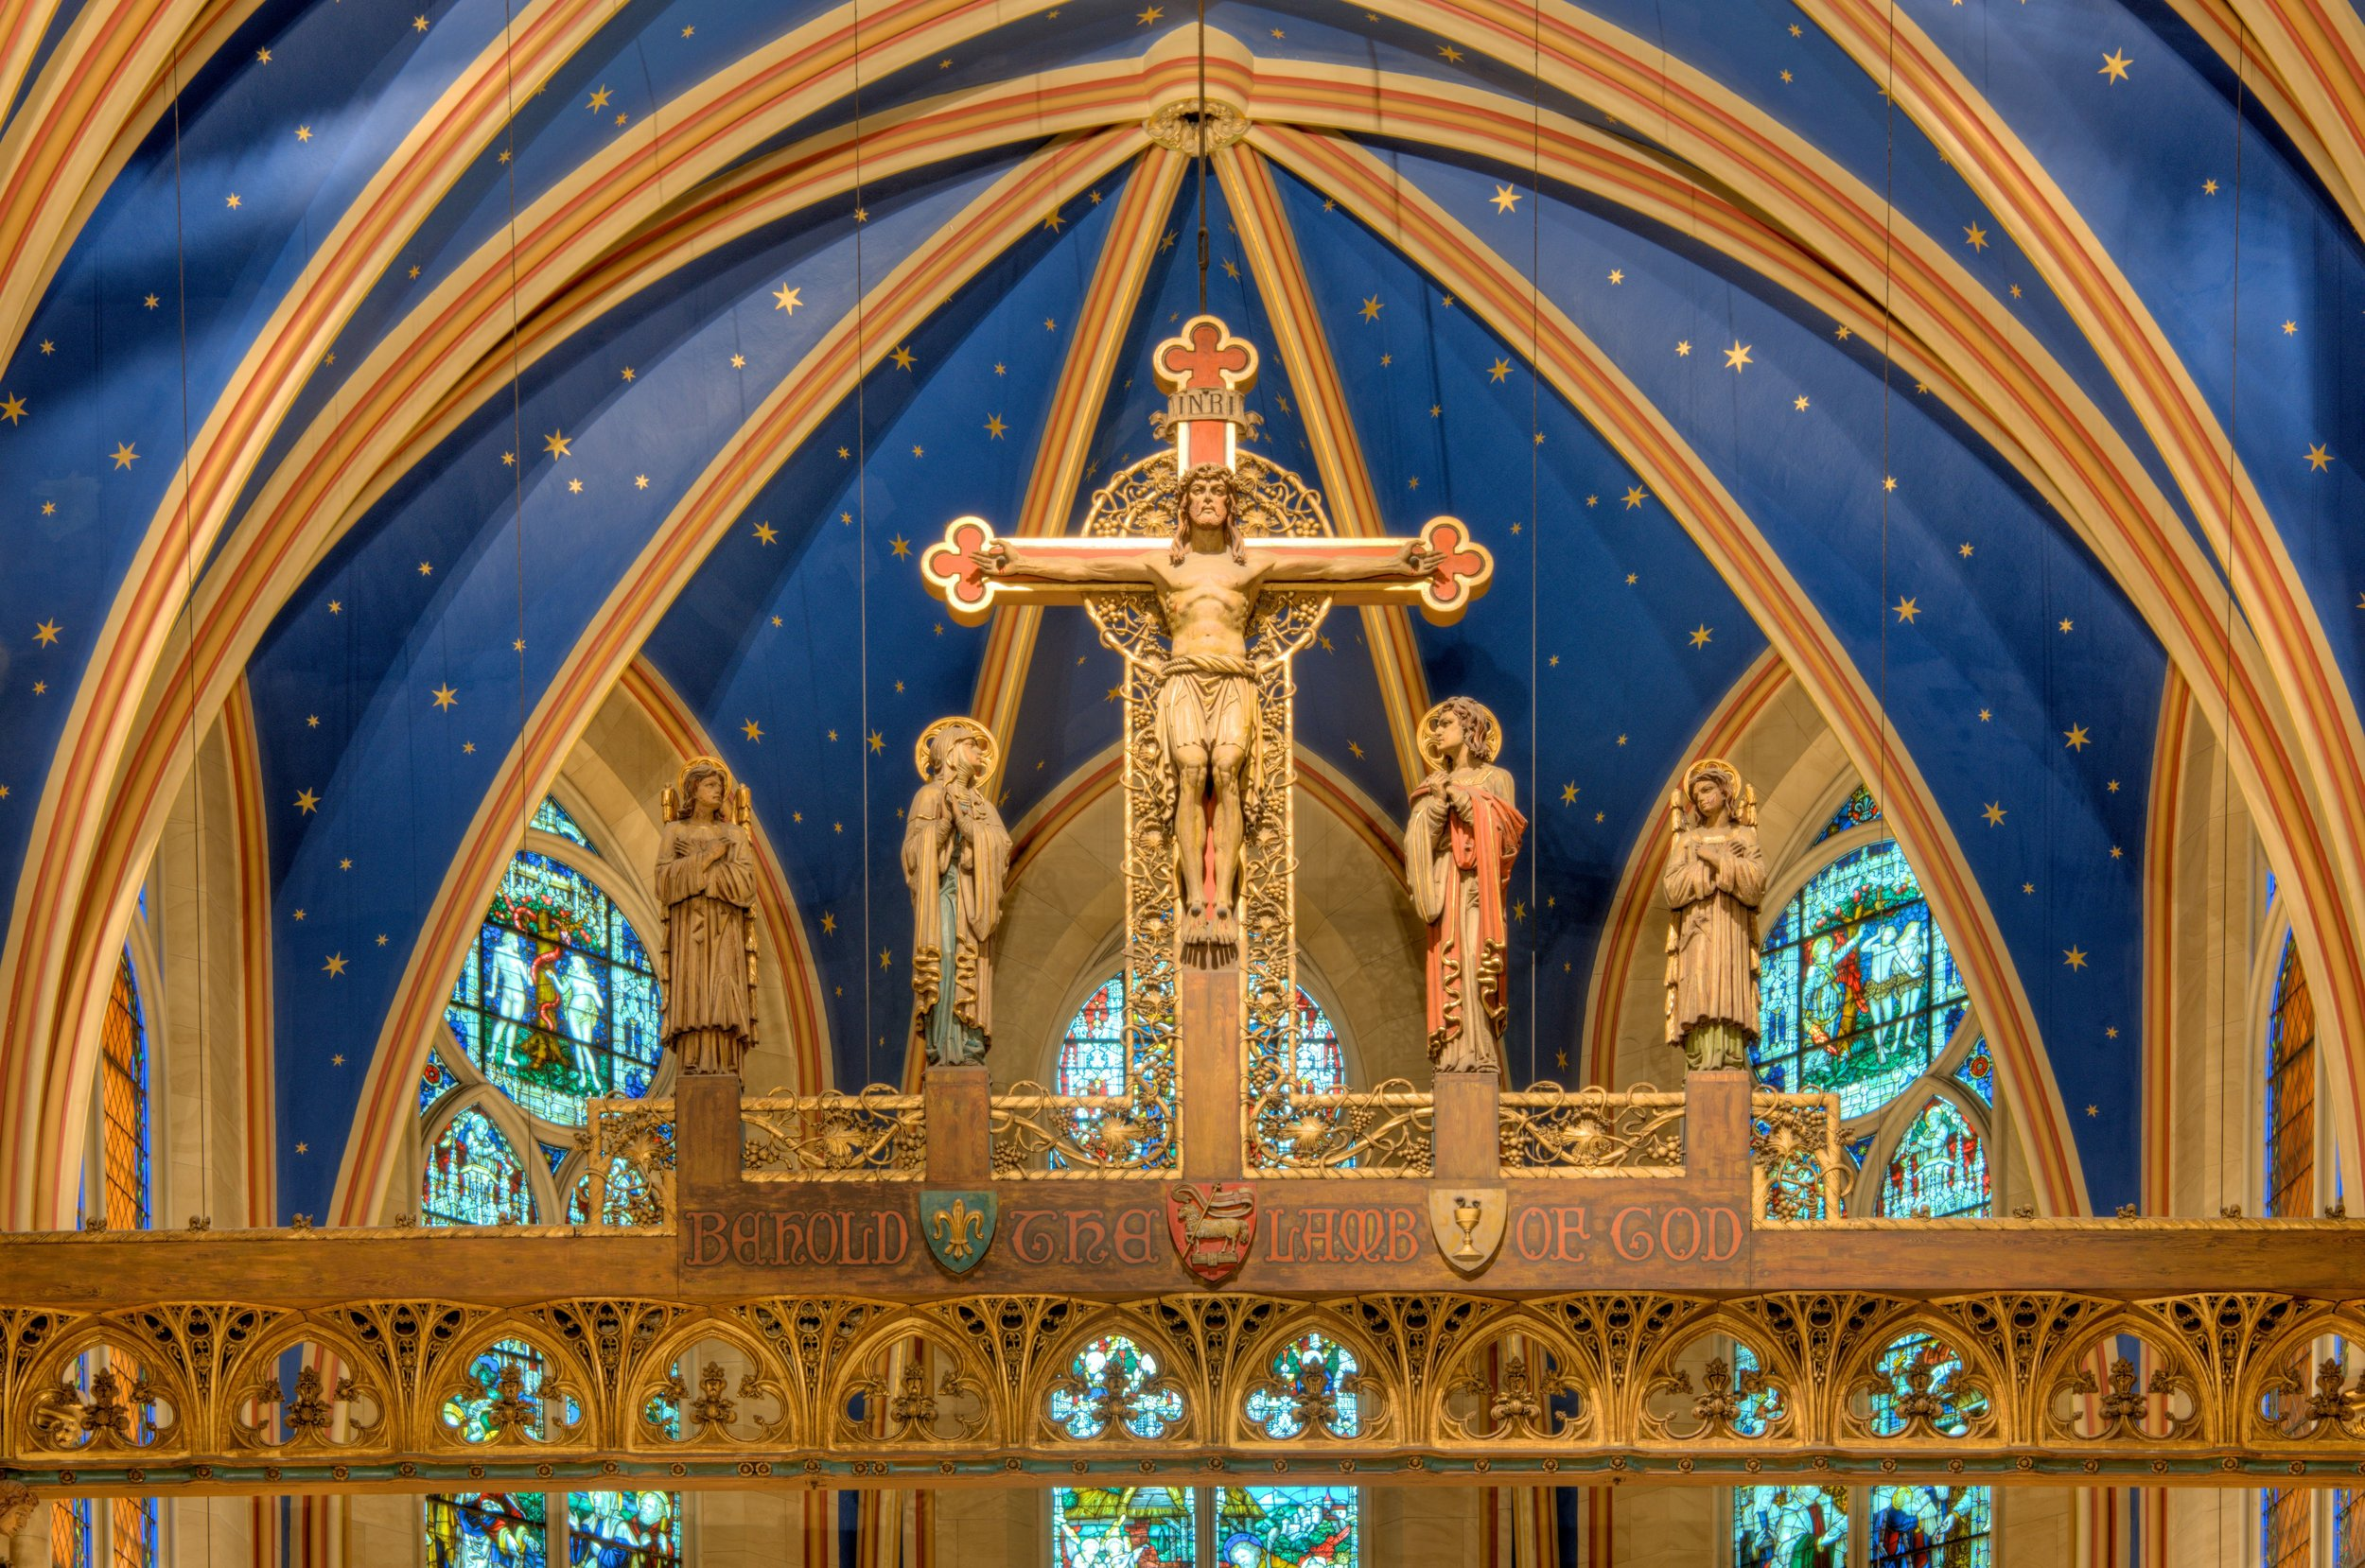 The Rood Beam at Saint Mary's (1912) by Johannes Kirchmayer (1860-1930). At the foot of the Cross stand the the Blessed Virgin and Saint John the Evangelist, flanked by two angels.   Photo:  Brian Kutner